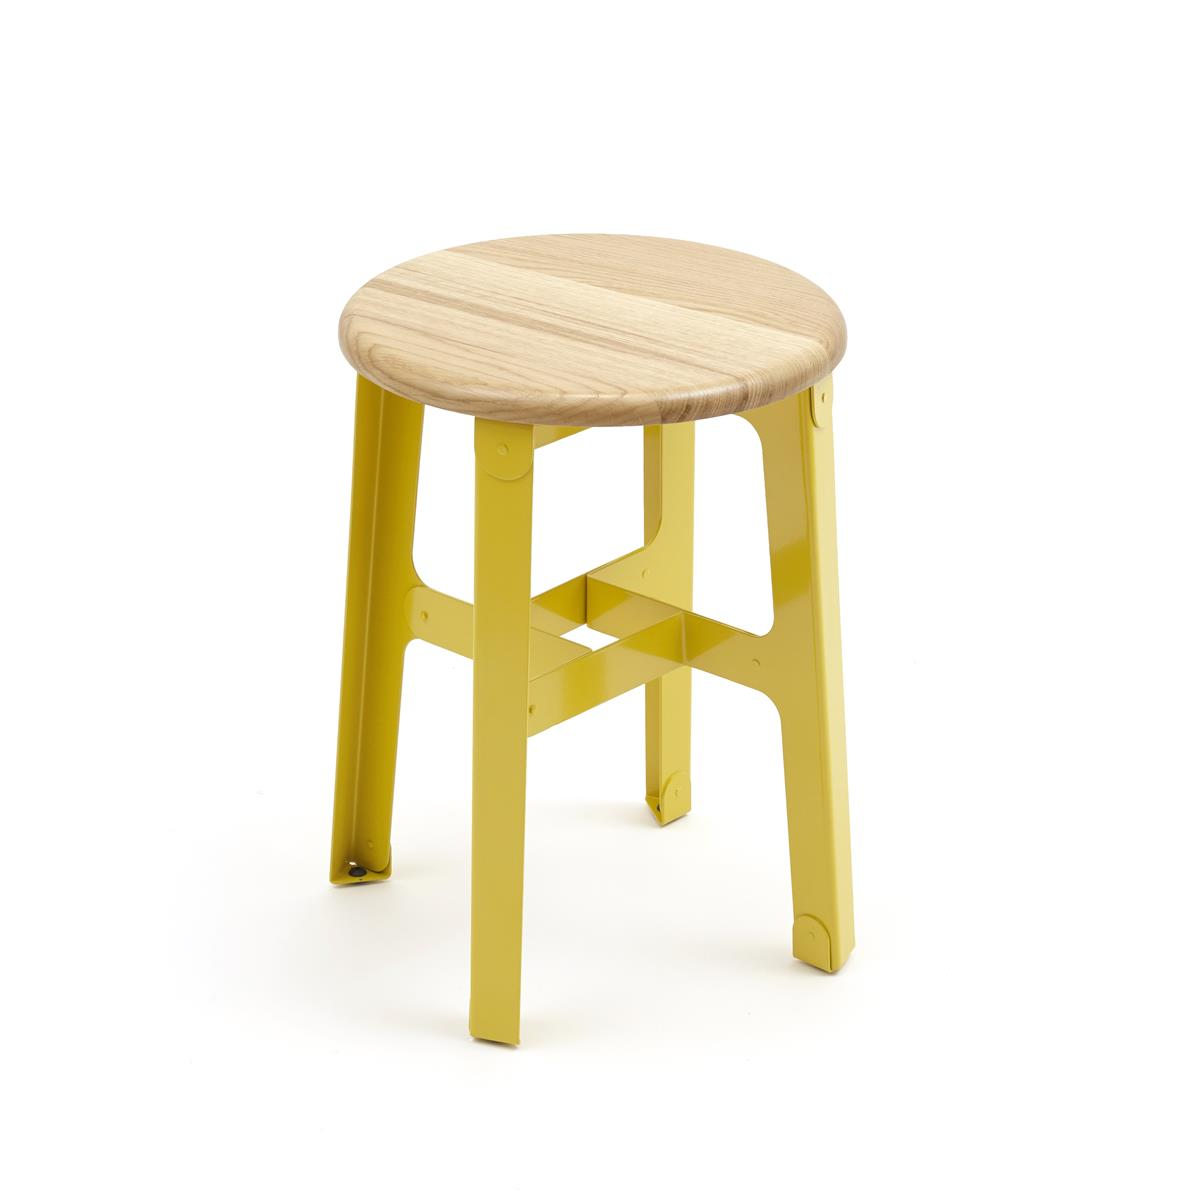 Construct stool H45 - Oak & Lemon Yellow